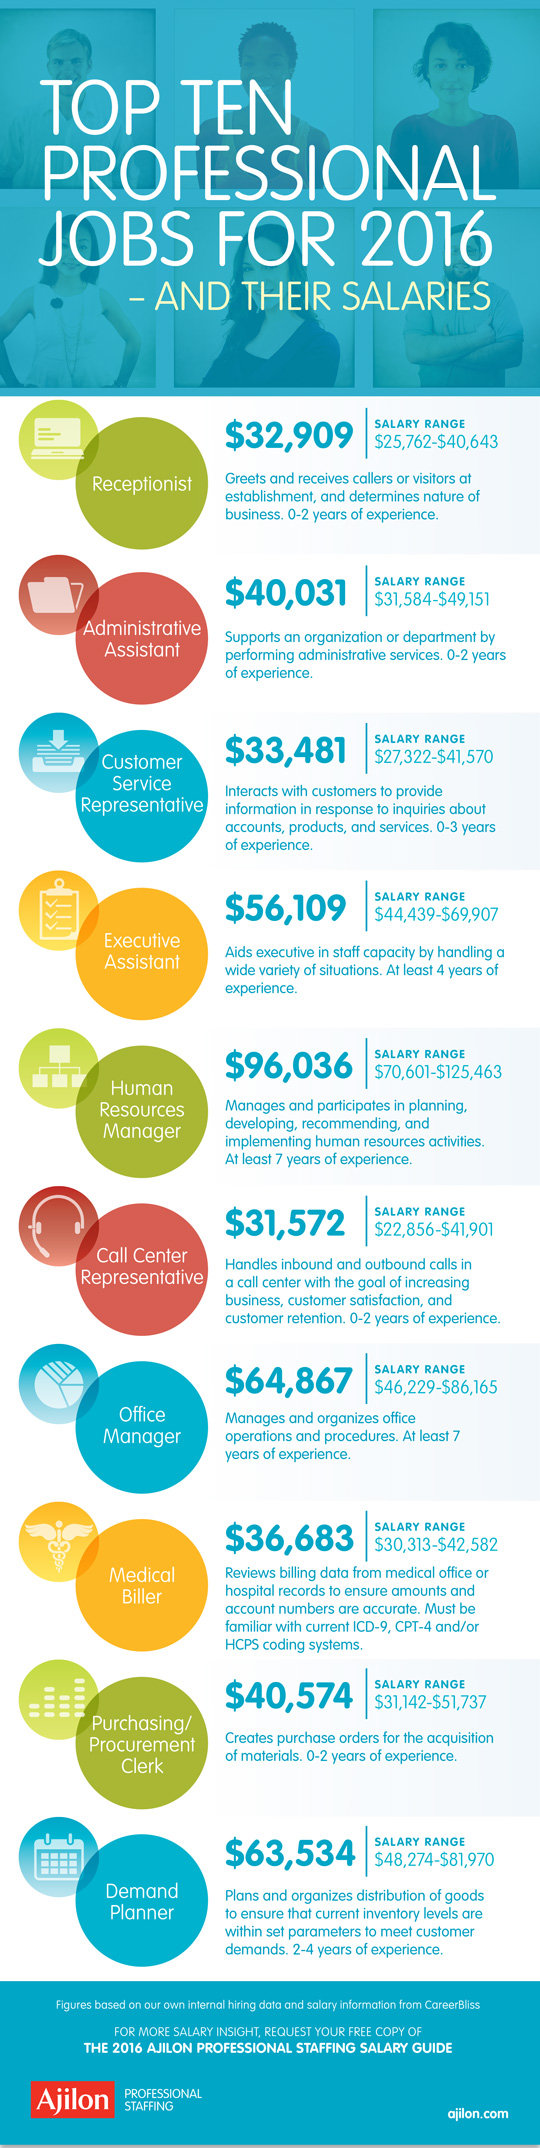 Top professional #Jobs in 2016 #Infographic